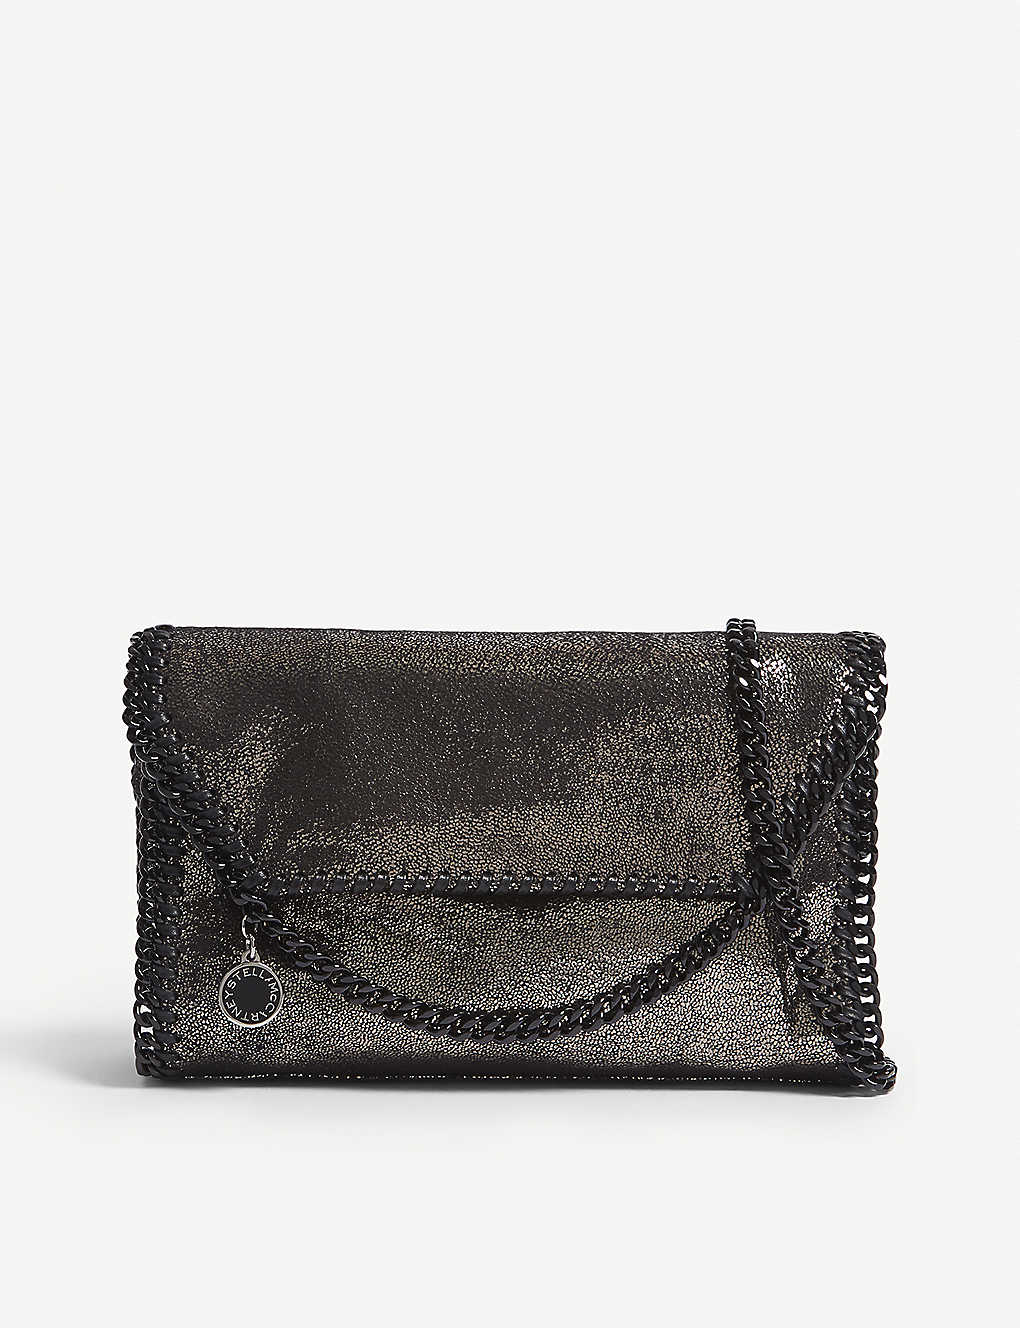 dc1e2efaaa STELLA MCCARTNEY - Falabella bag